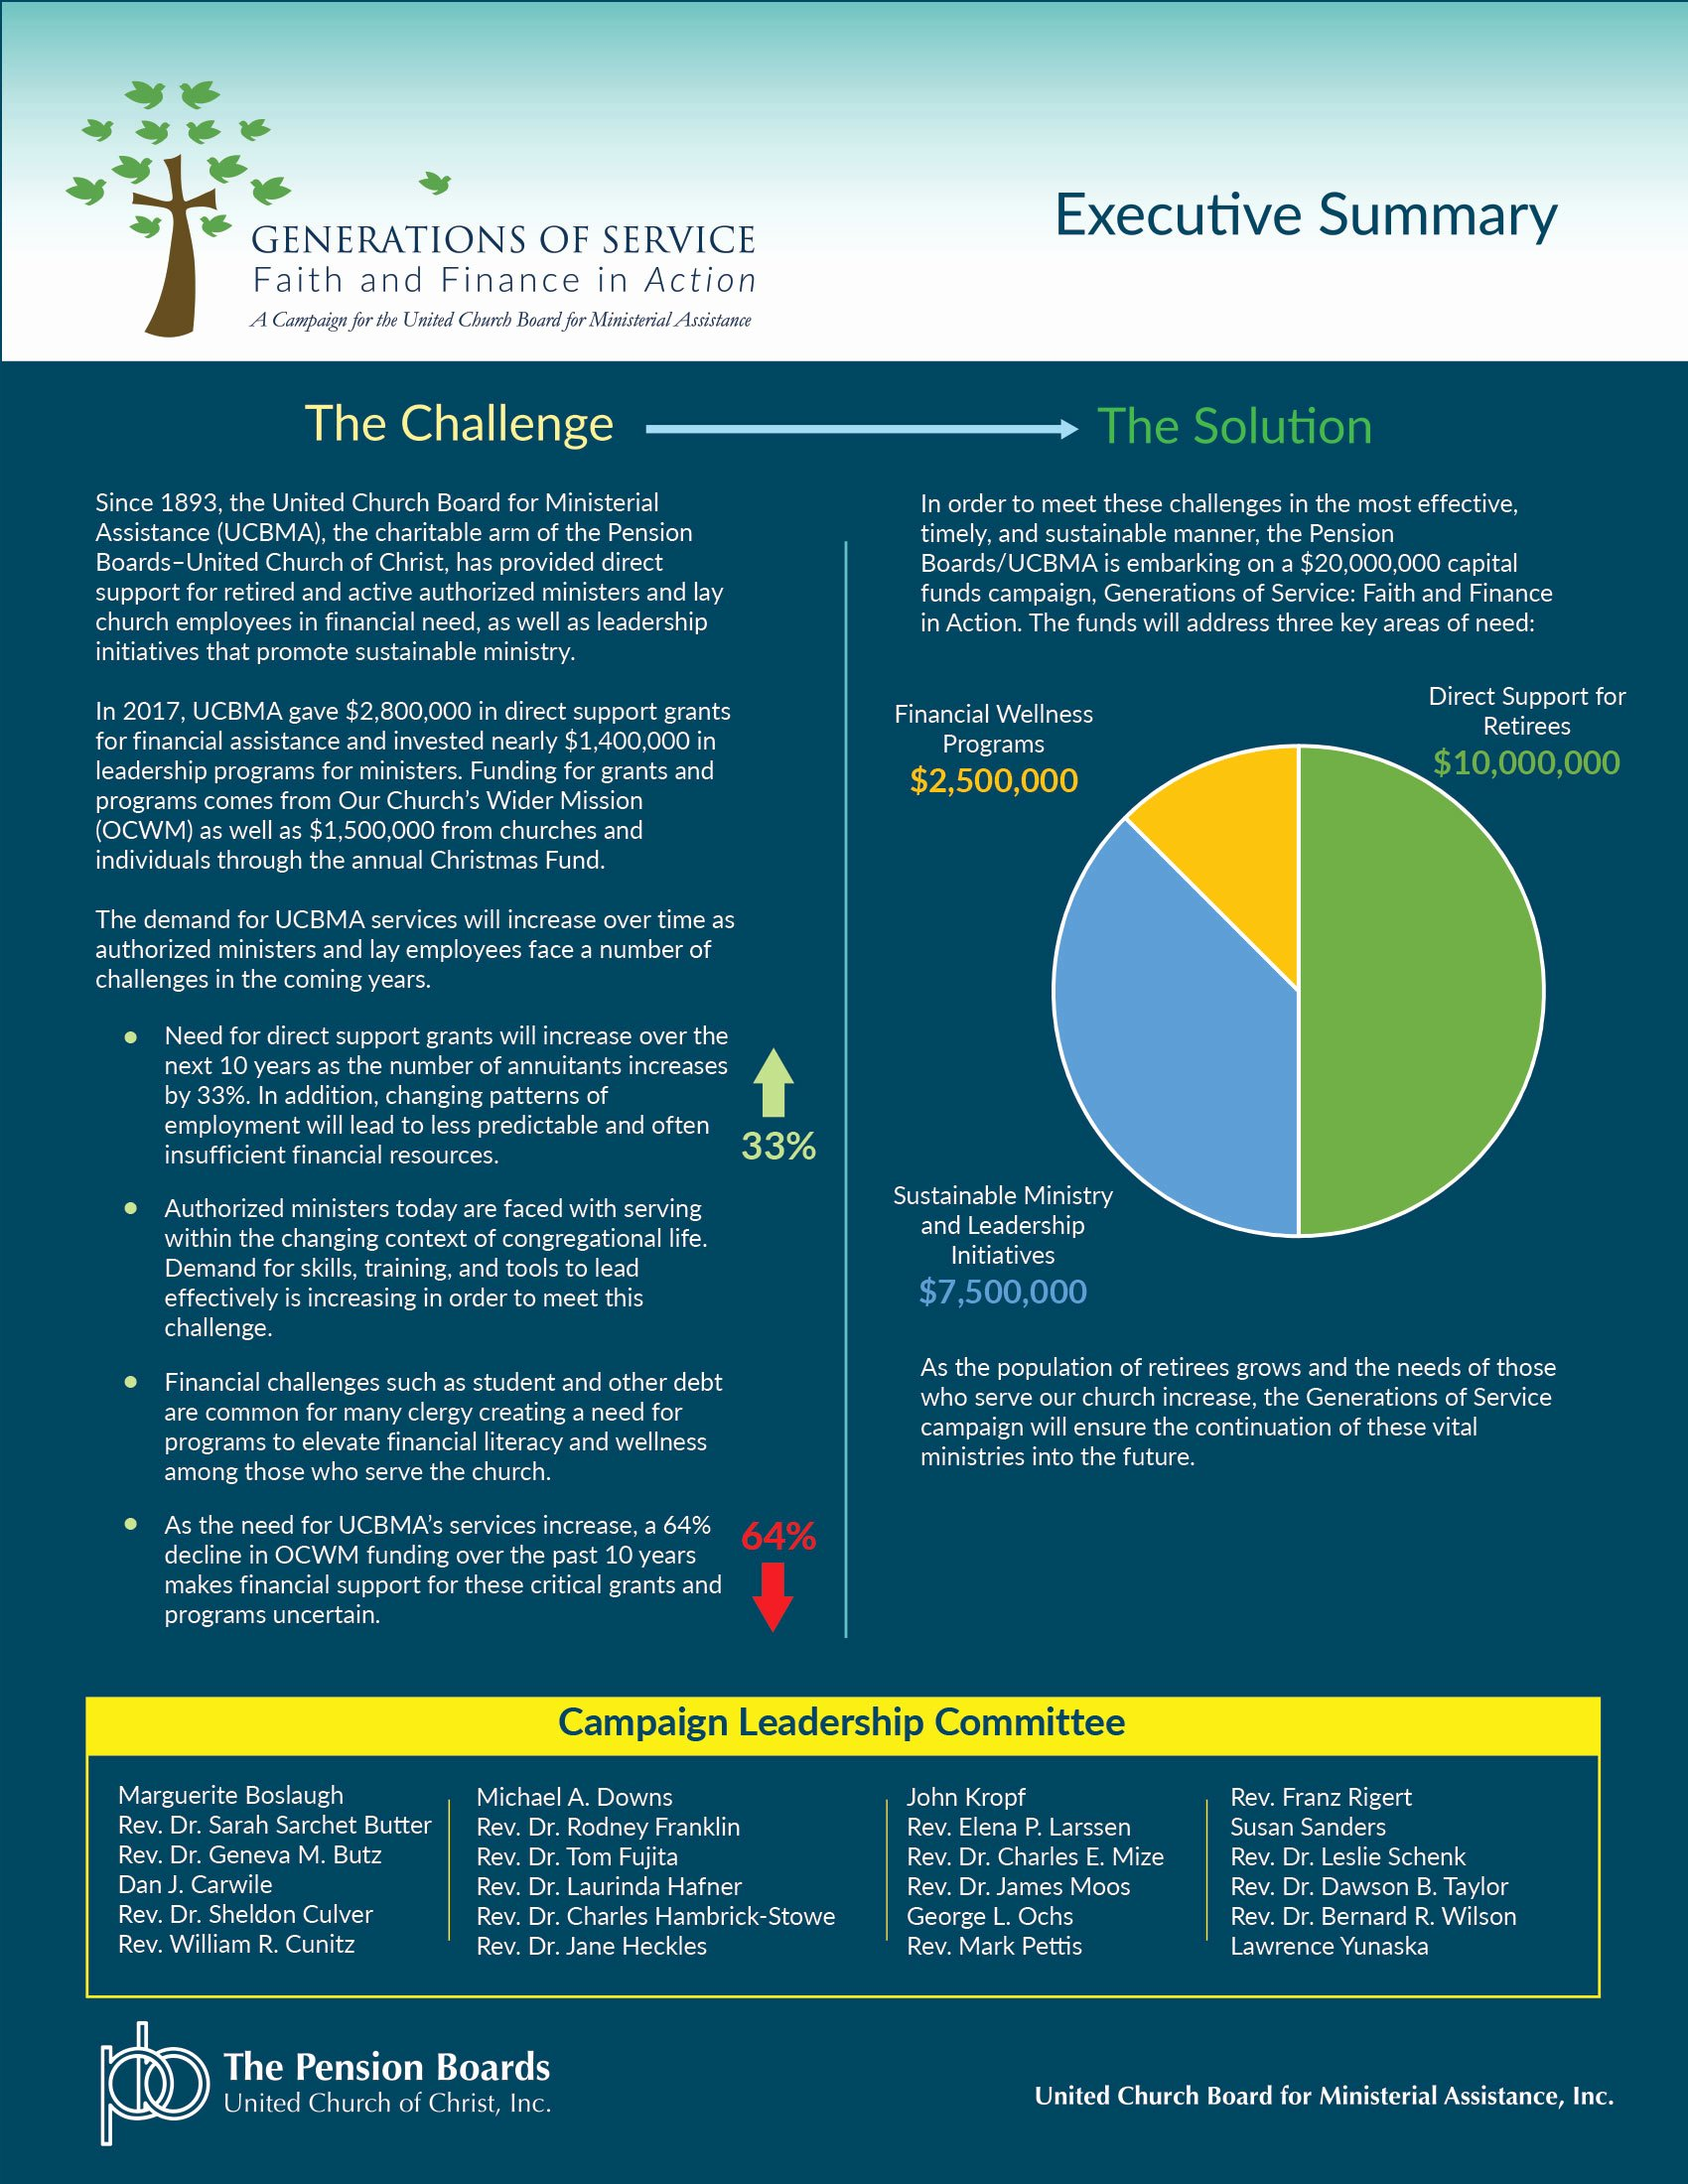 One Page Executive Summary Awesome the Pension Boards Pbucc Executive Summary